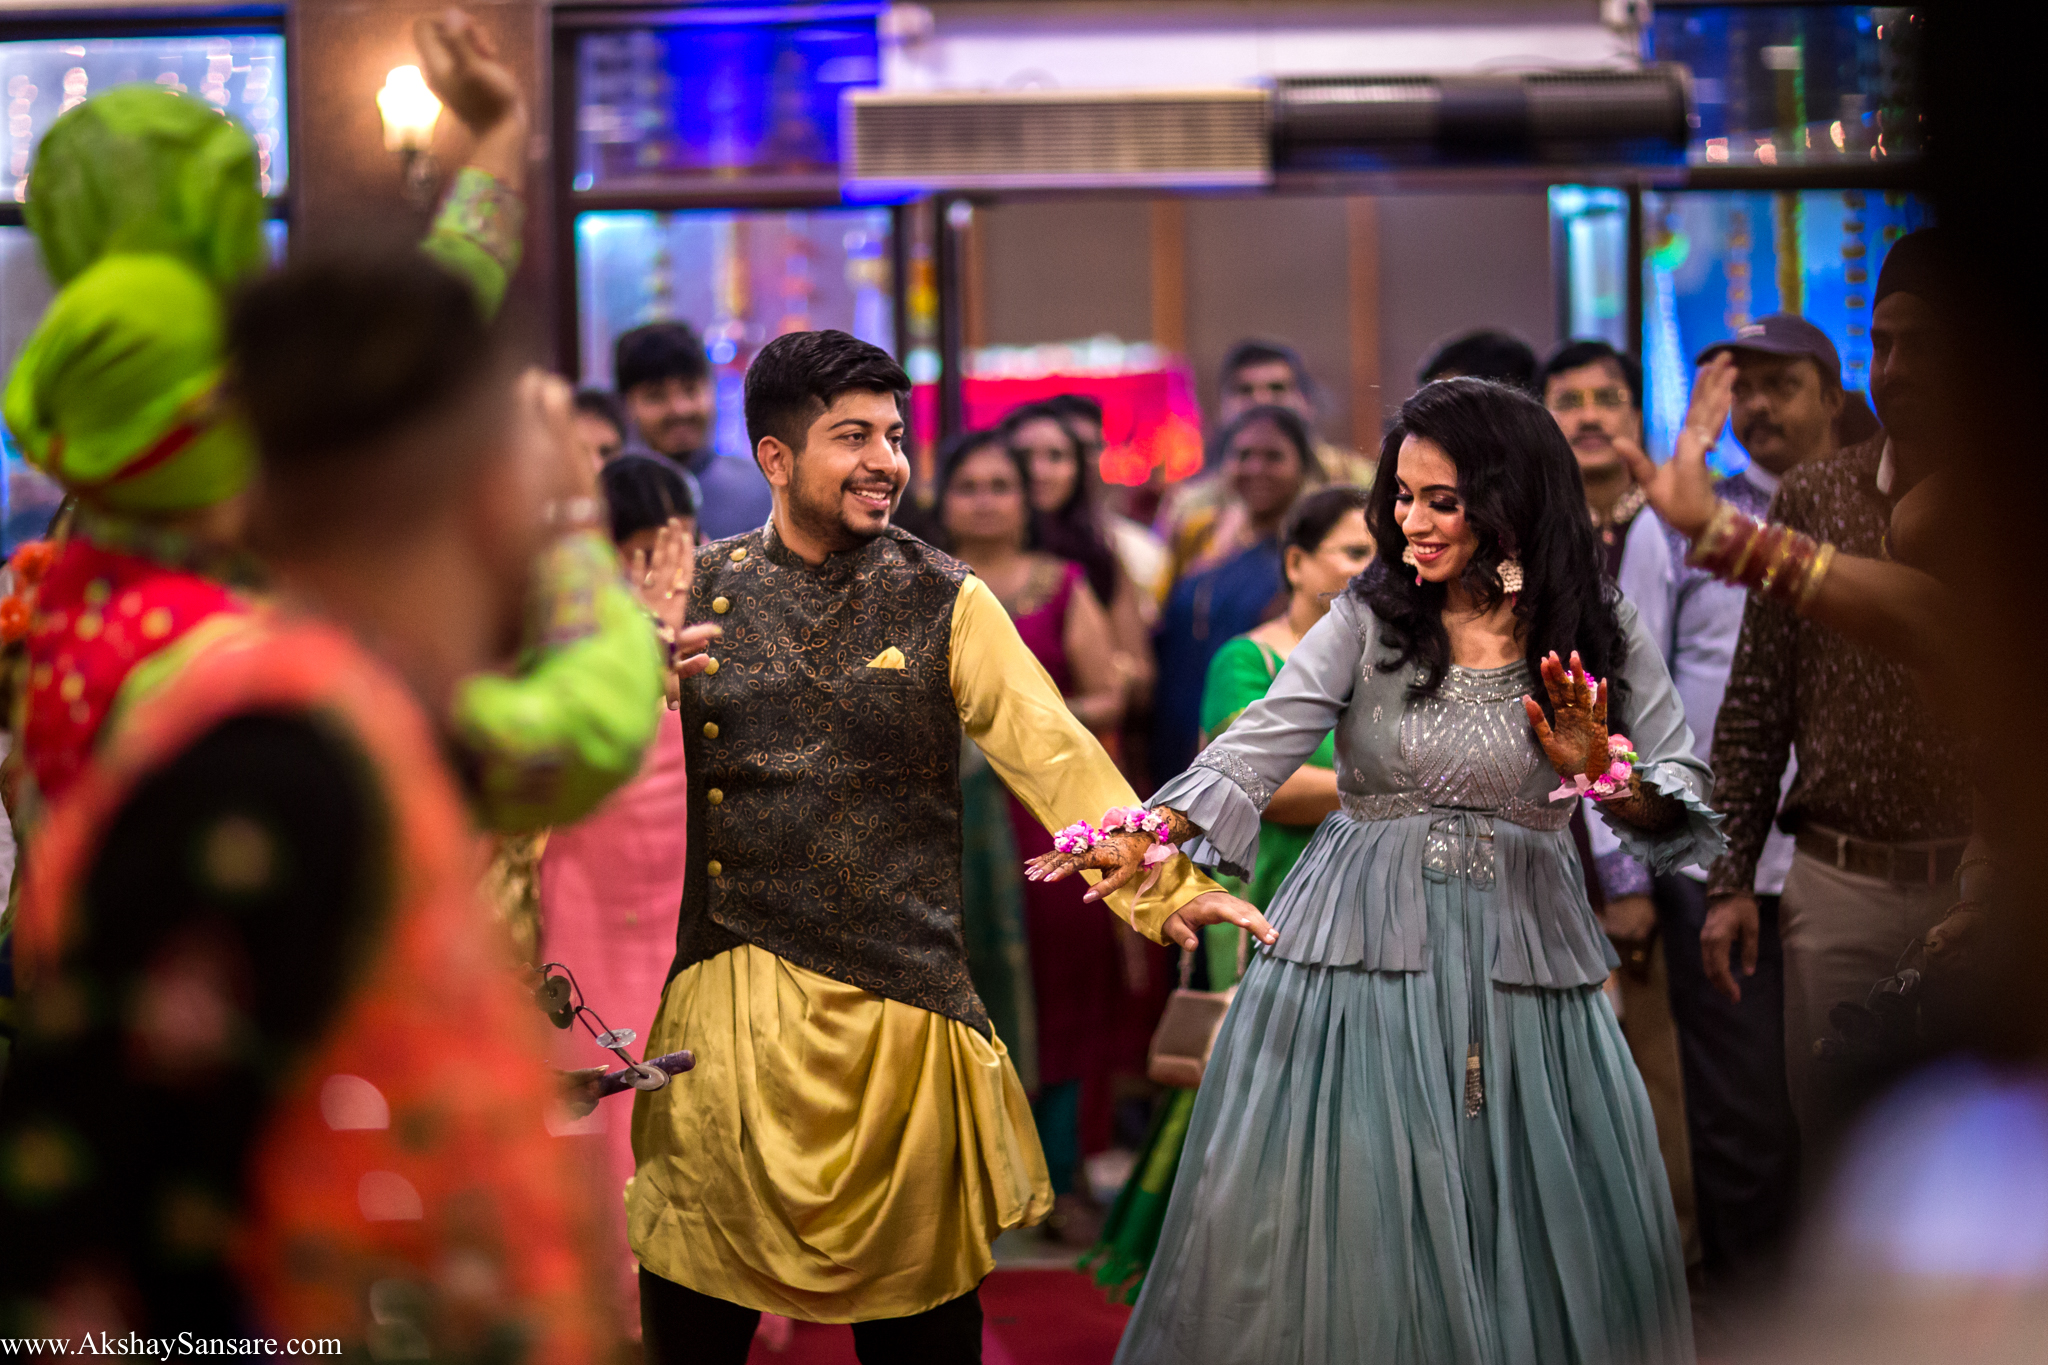 Nupur & Rohan wedding Akshay Sansare Photography best wedding photographer in mumbai India Candid(16).jpg